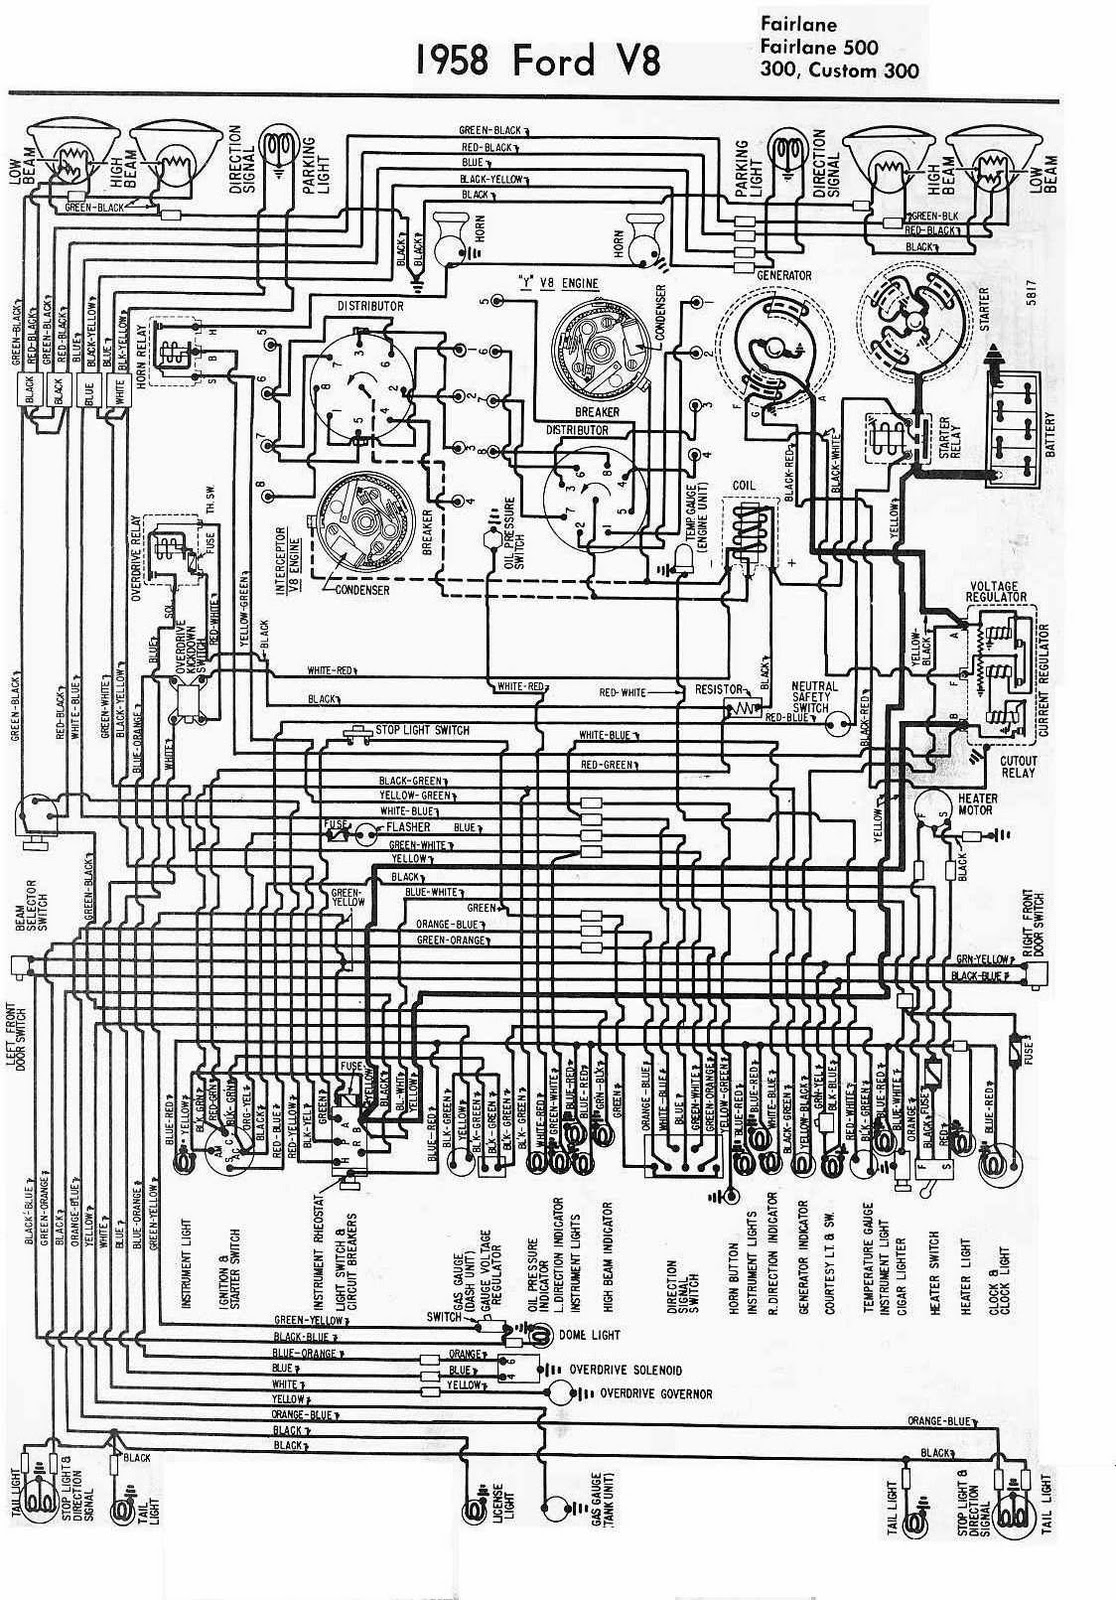 1996 jaguar xj6 engine diagram schematics online 1955 ford fairlane horn wiring diagram